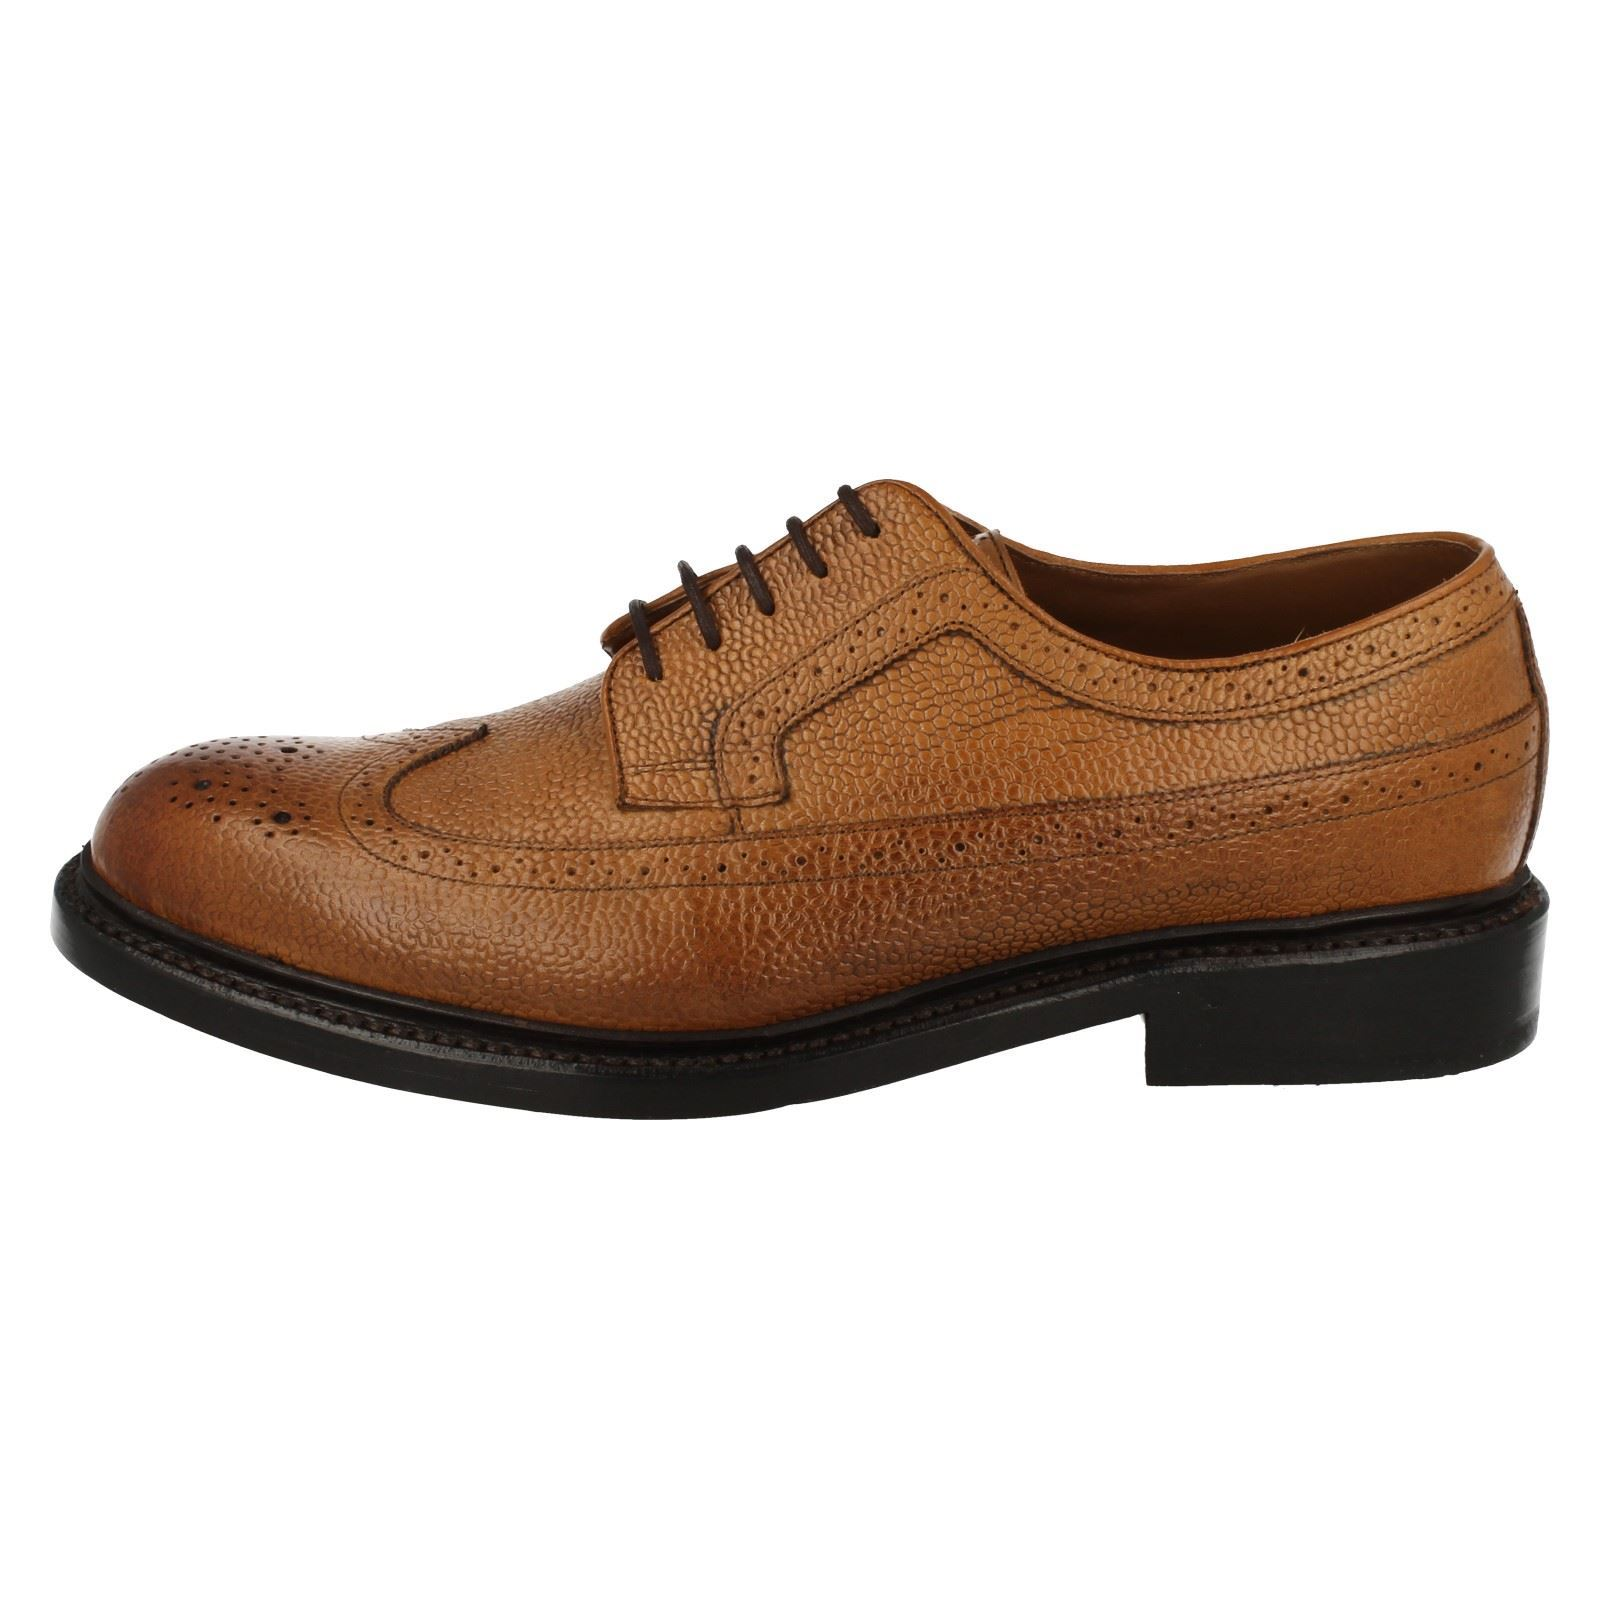 Herren Clarks Limit' Lace Up Schuhes 'Edward Limit' Clarks b0d47d